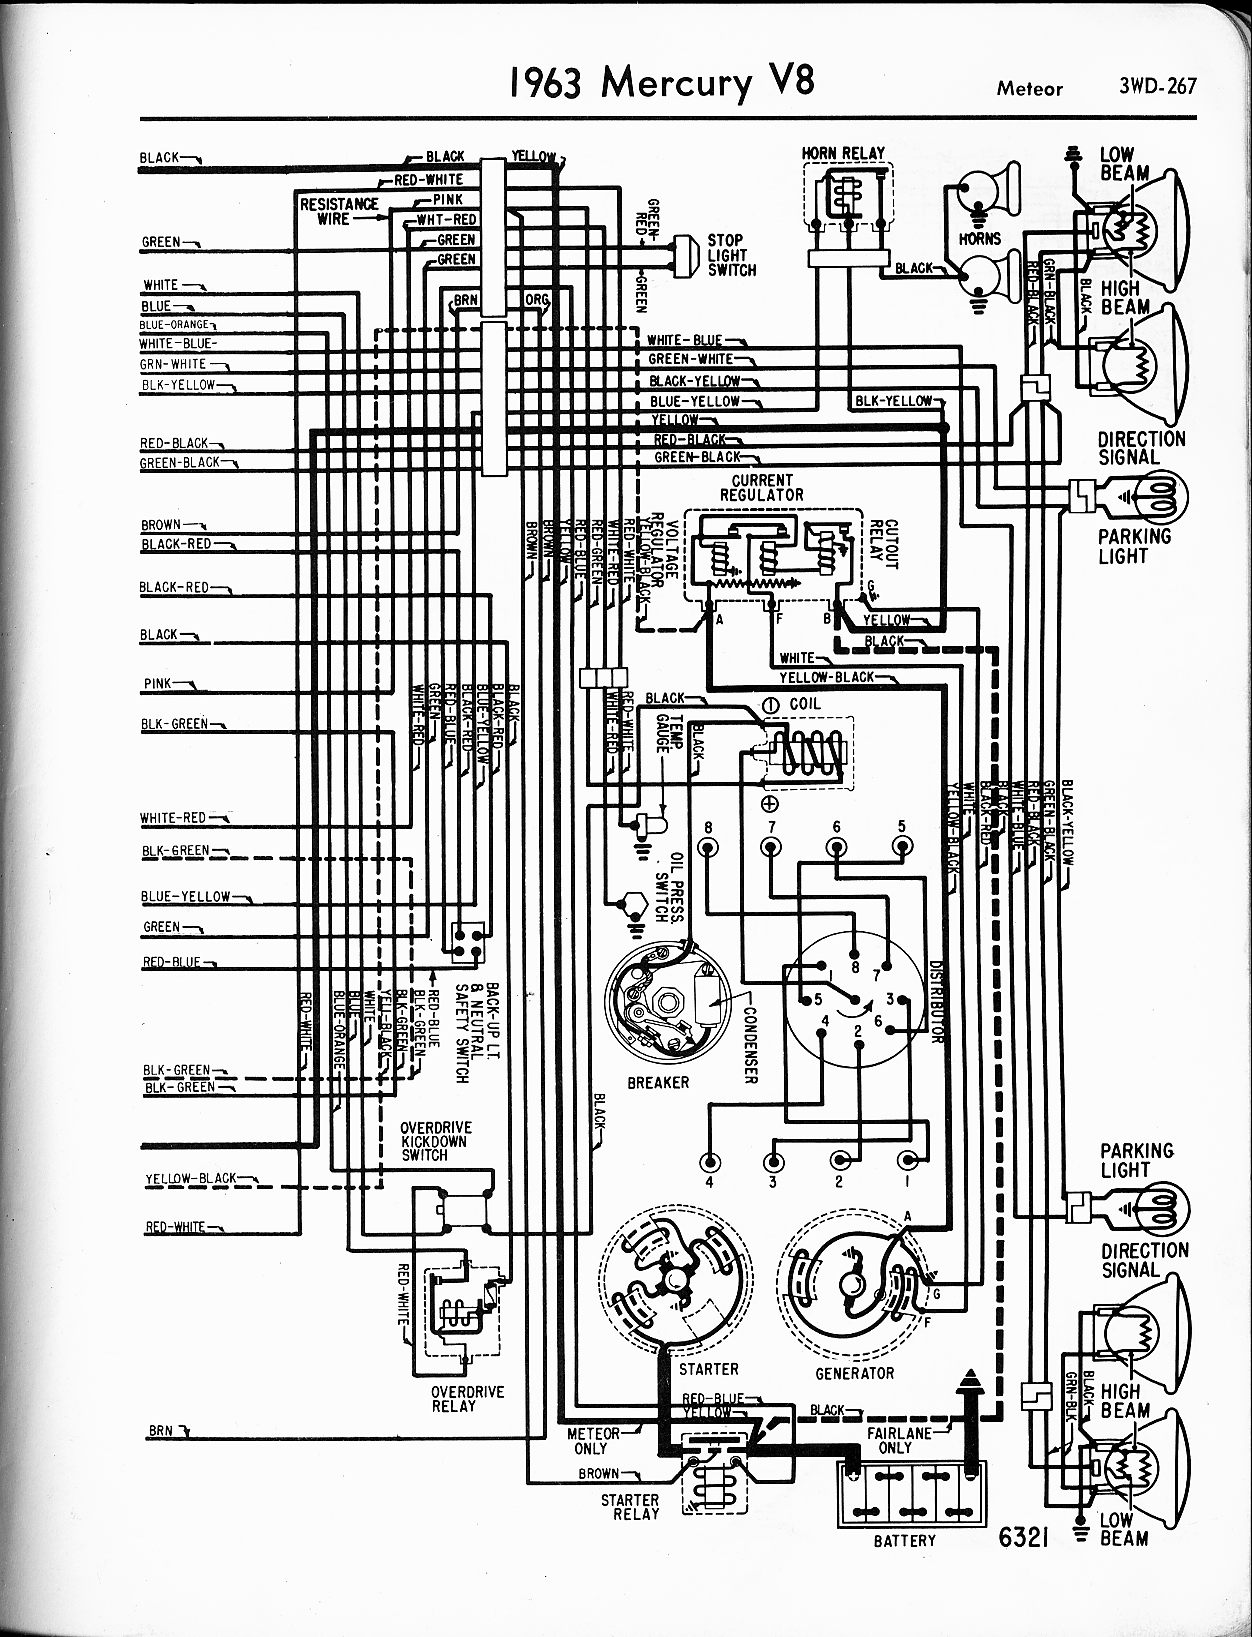 ididit steering column wiring diagram with 1957 Chevy Truck Turn Signal Wiring Diagram on Horn Still Does Not Honk 76012 2 together with 1967 Nova Column Wiring Diagram furthermore 1957 Chevy Truck Turn Signal Wiring Diagram in addition 1978 Jeep Cj Wiring Diagram in addition Wiring Diagram For Flaming River Steering Column.